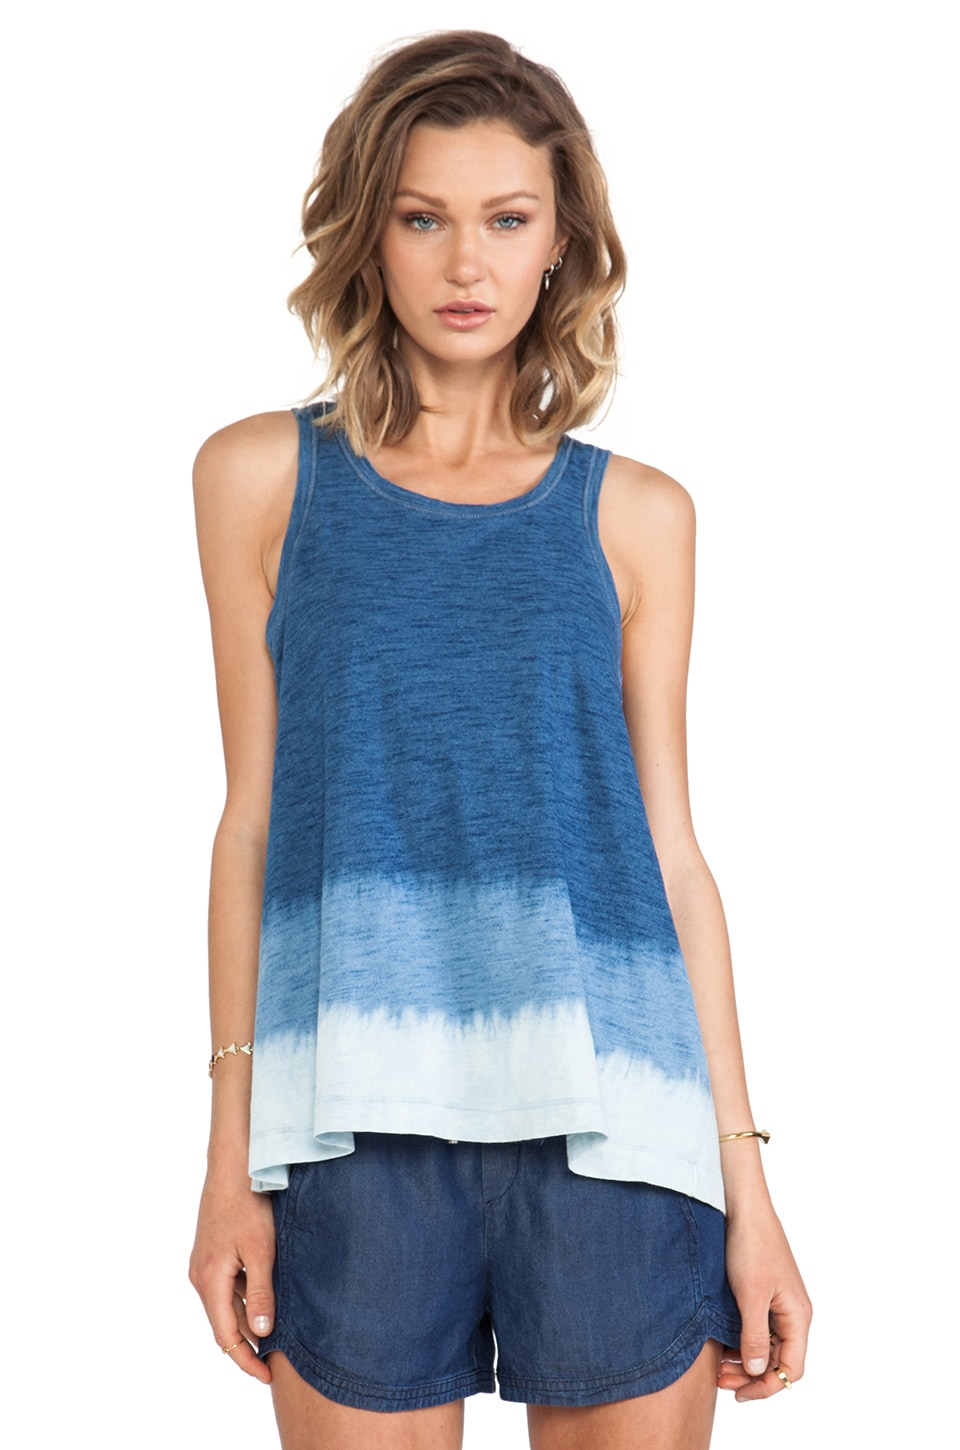 Splendid Indigo Dye Tank in Medium